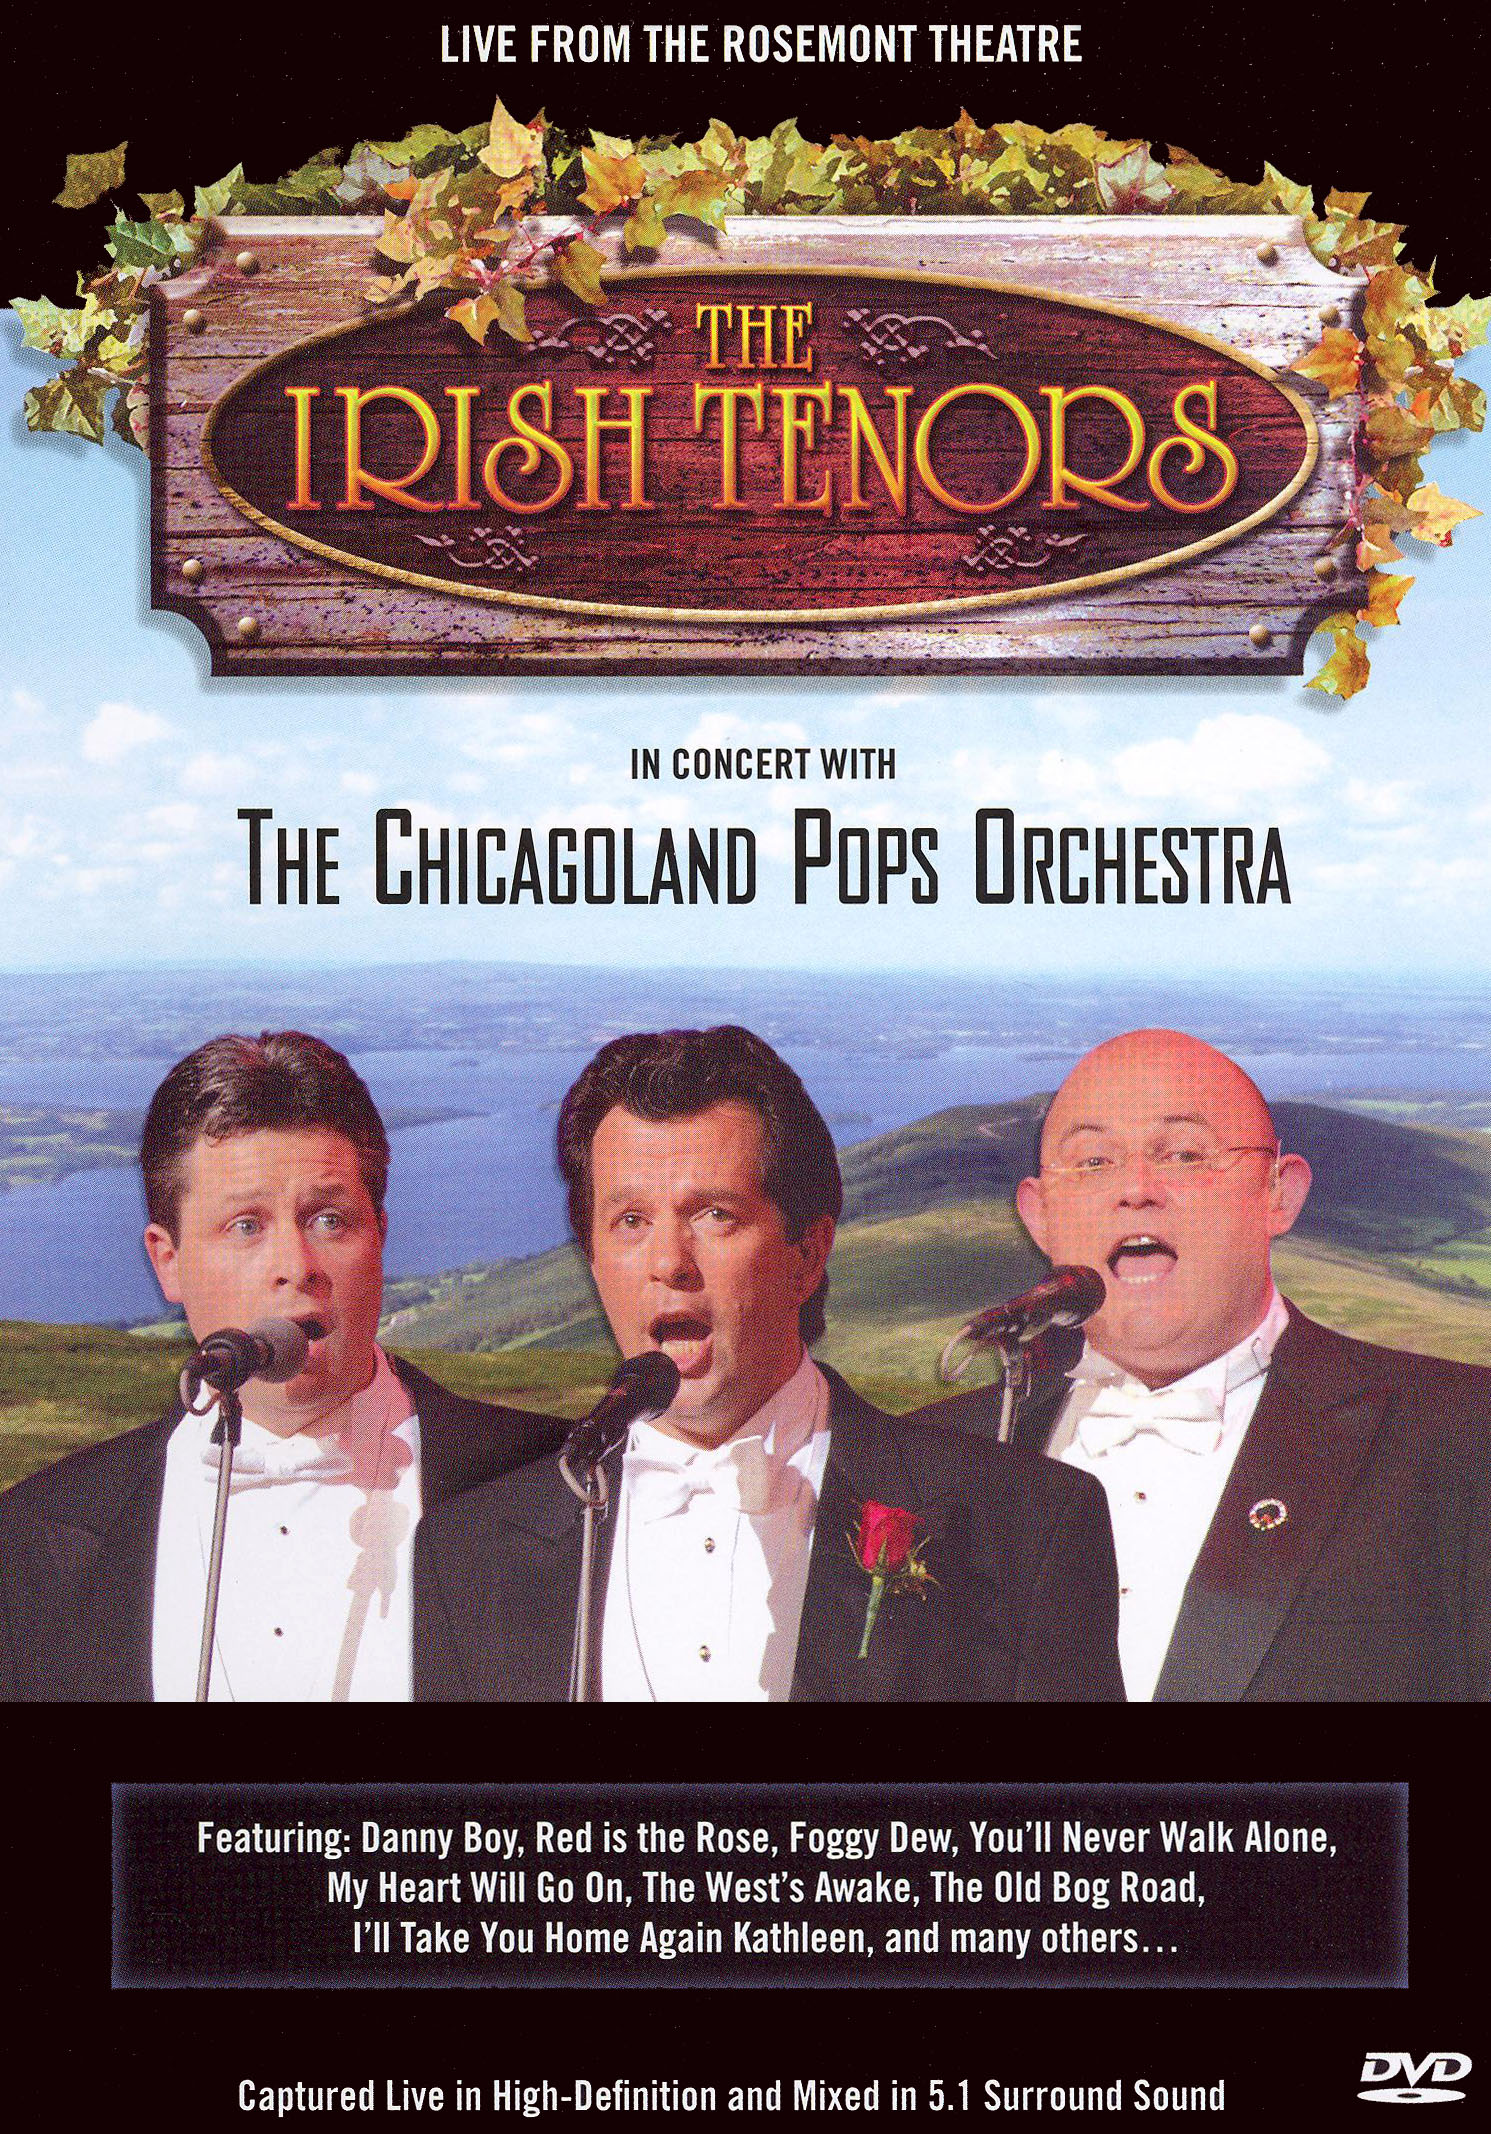 The Irish Tenors in Concert with the Chicagoland Pops Orchestra